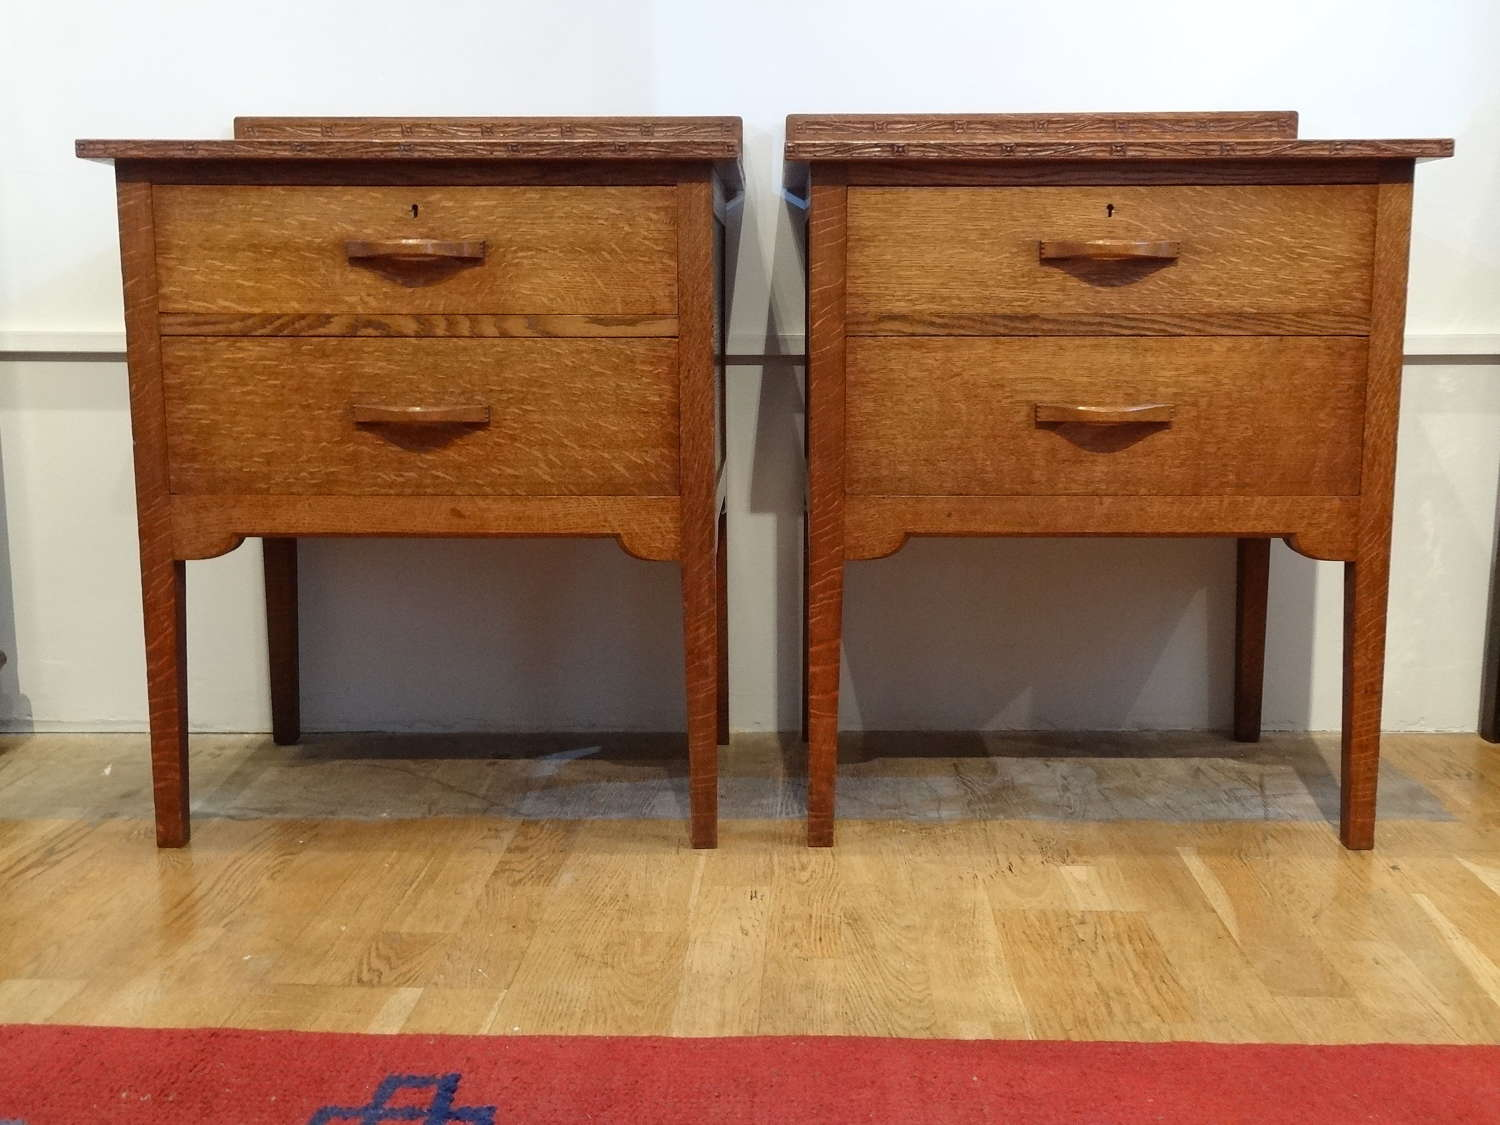 Rare pair of Arthur Simpson of Kendal bedside cabinets